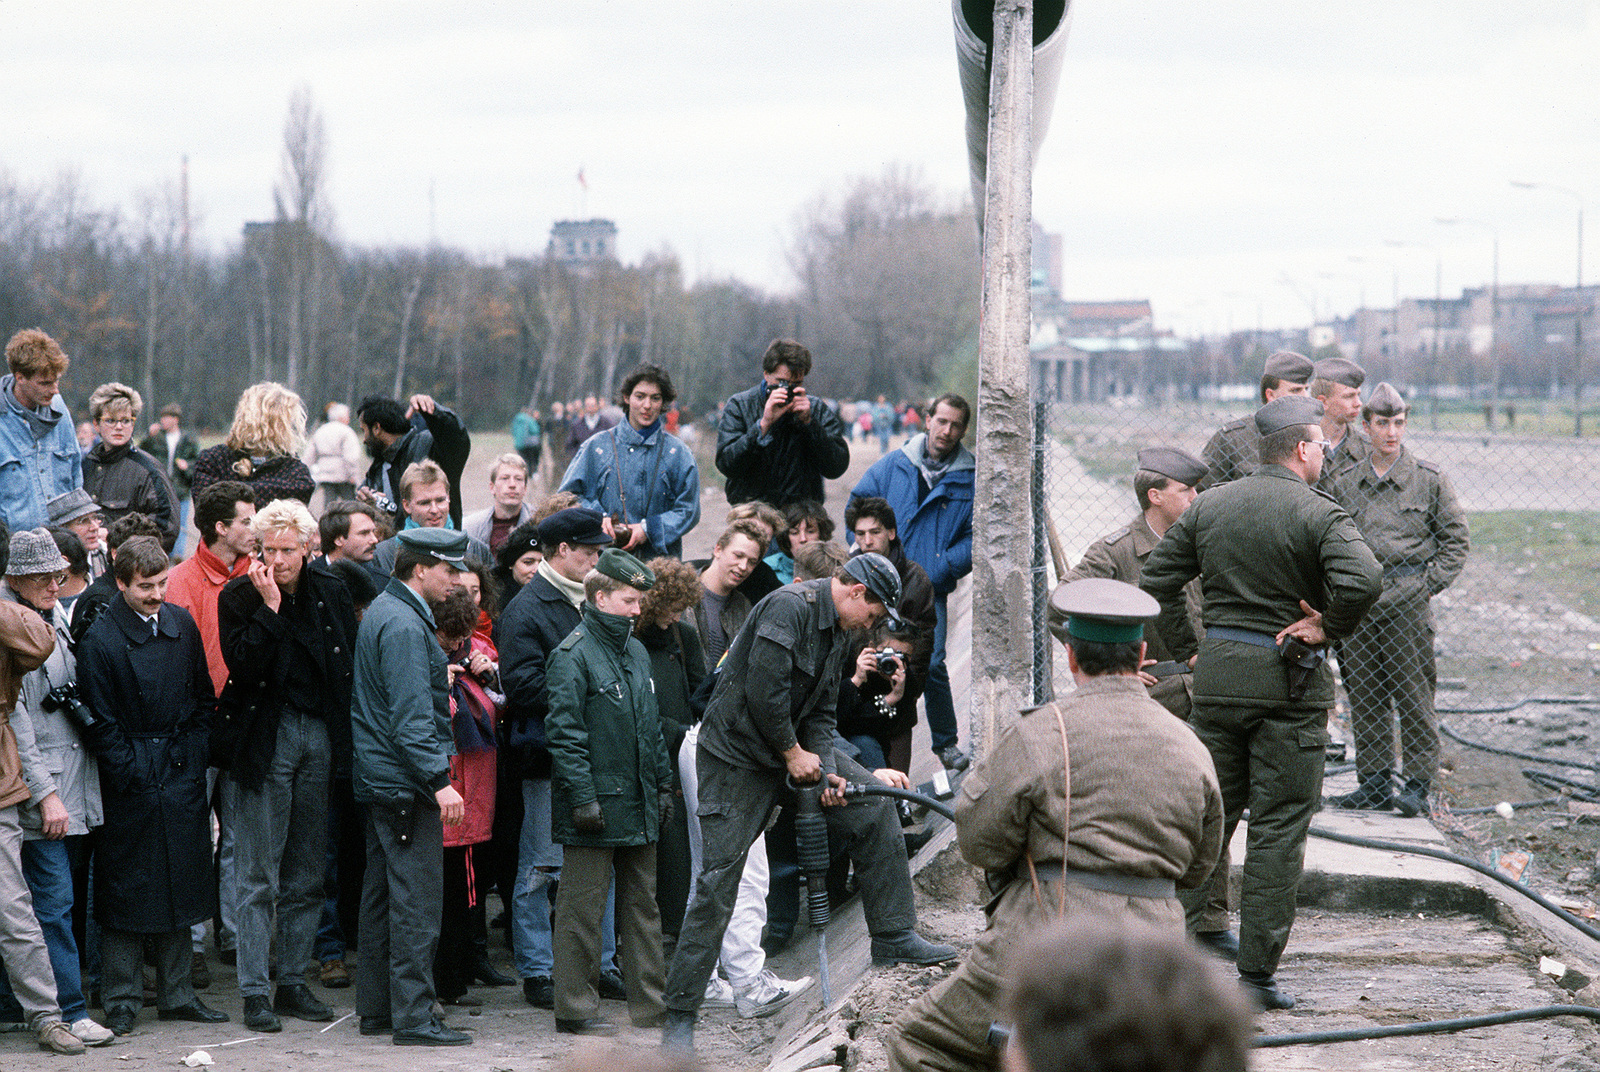 A crowd gathers on the West German side of the Berlin Wall at Potsdamer Platz to watch as the structure is dismantled